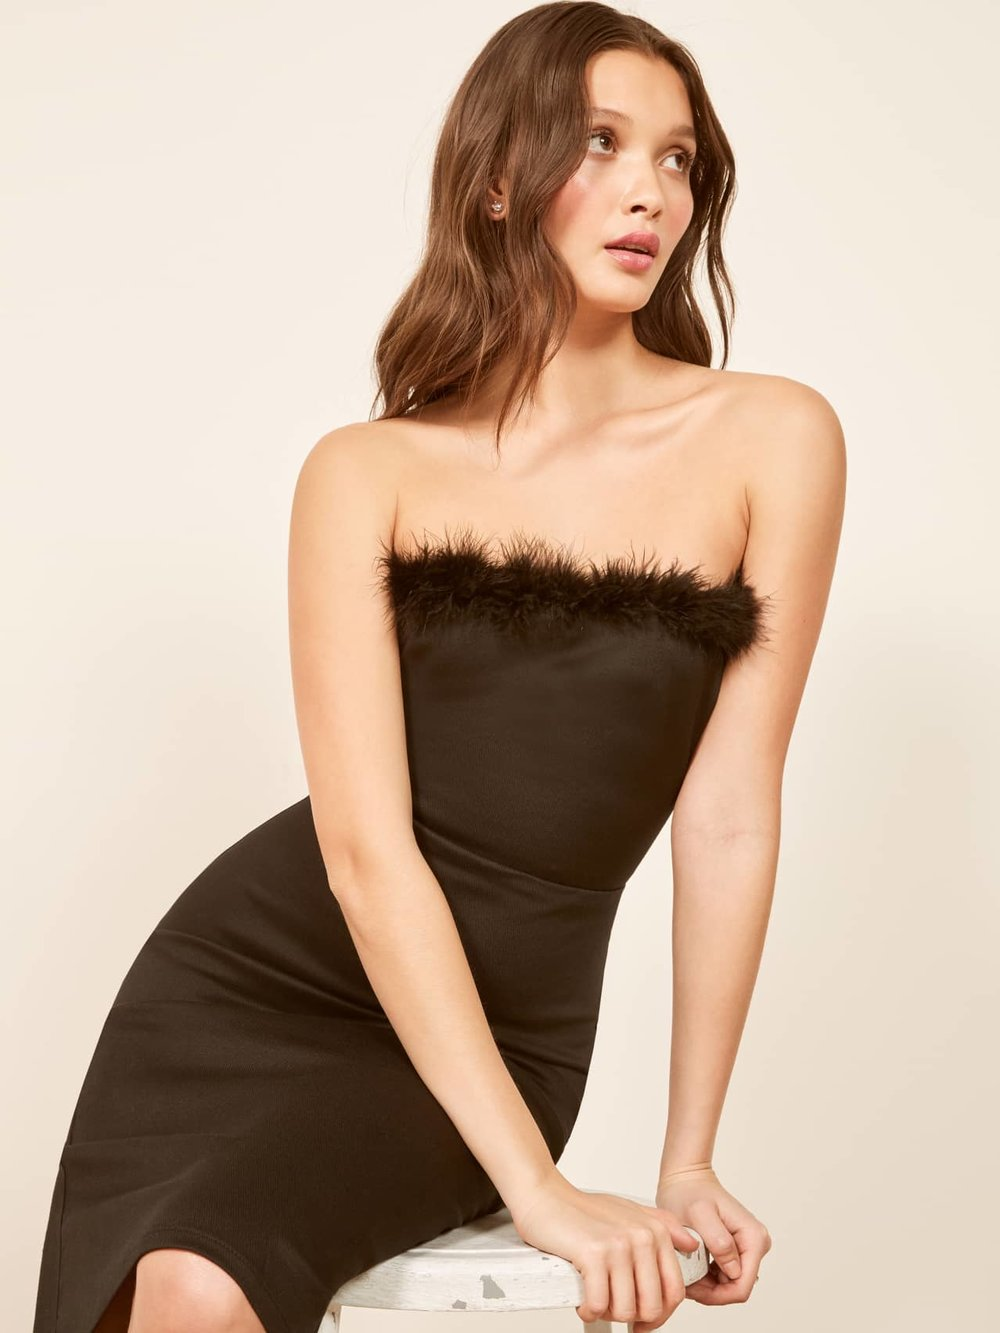 Reformation Party Dress - Reformation has the best dresses, especially when it comes to the holiday season.